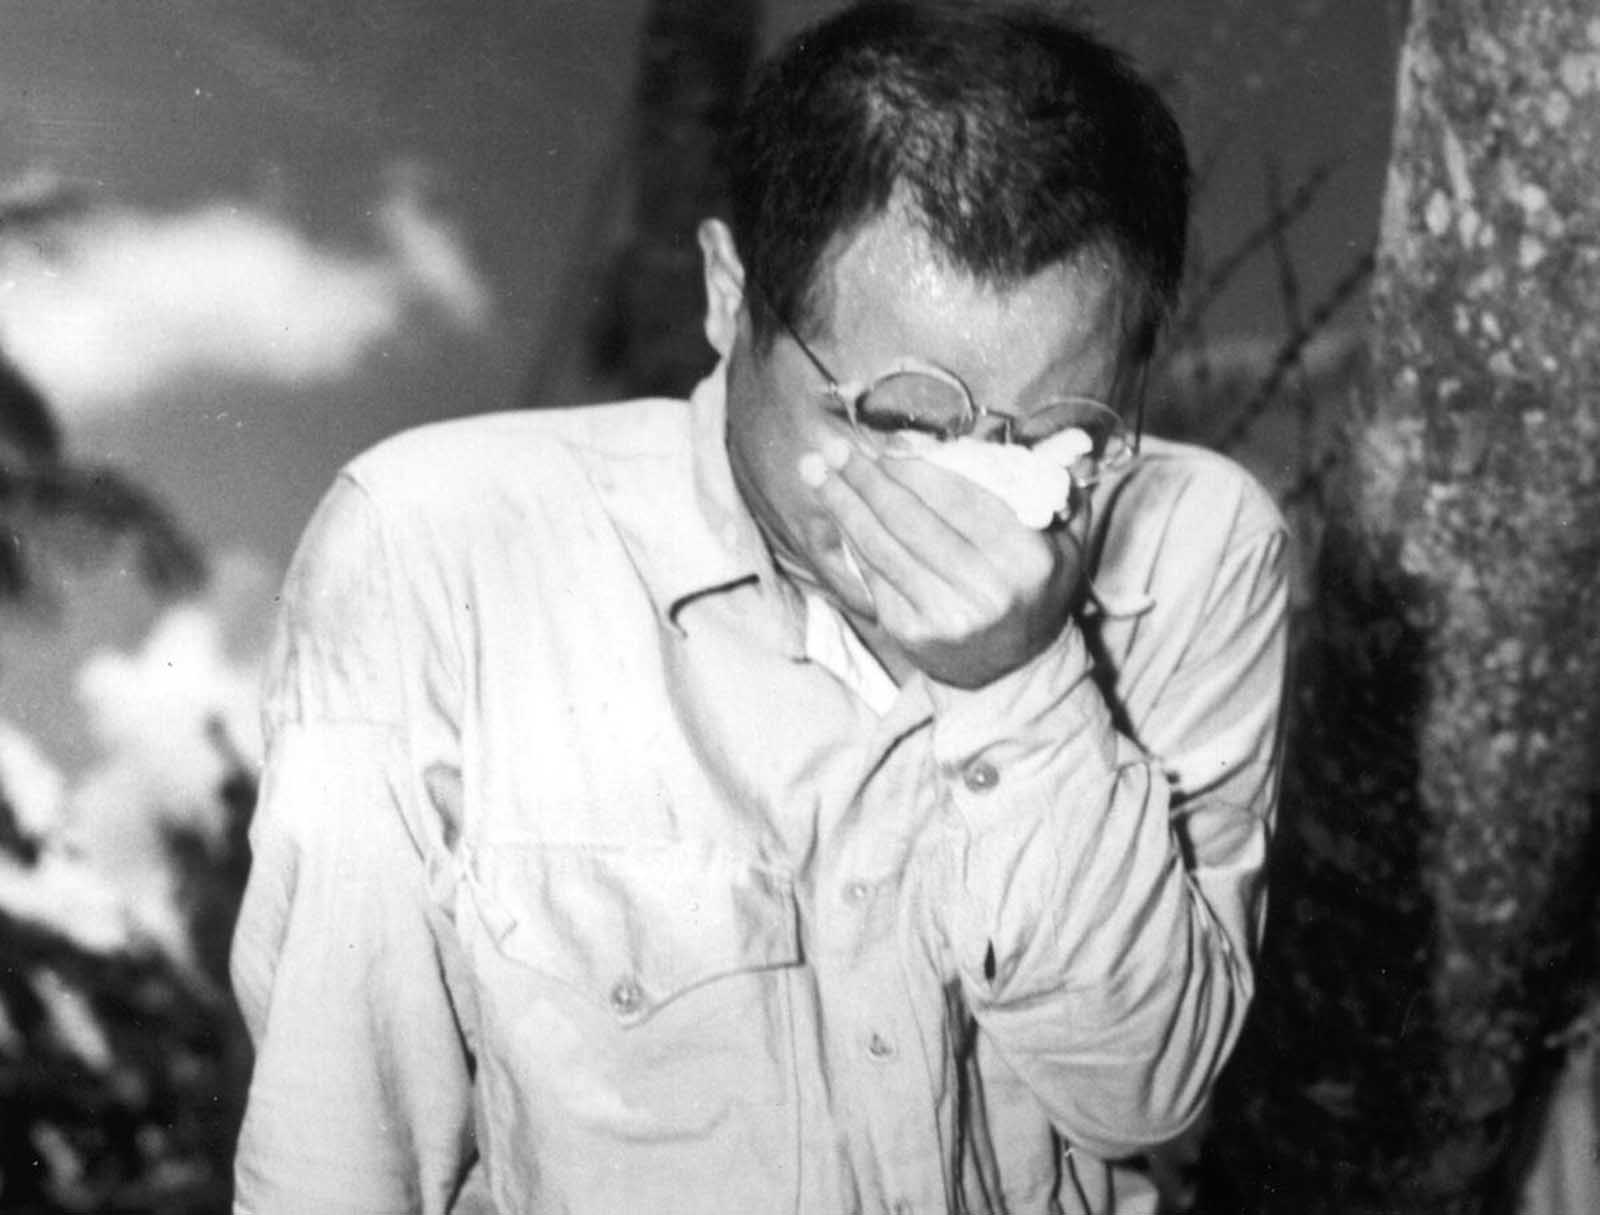 A Japanese prisoner of war at Guam, Mariana Islands, covers his face as he hears Japanese Emperor Hirohito making the announcement of Japan's unconditional surrender on August 15, 1945. World War II had come to an end.